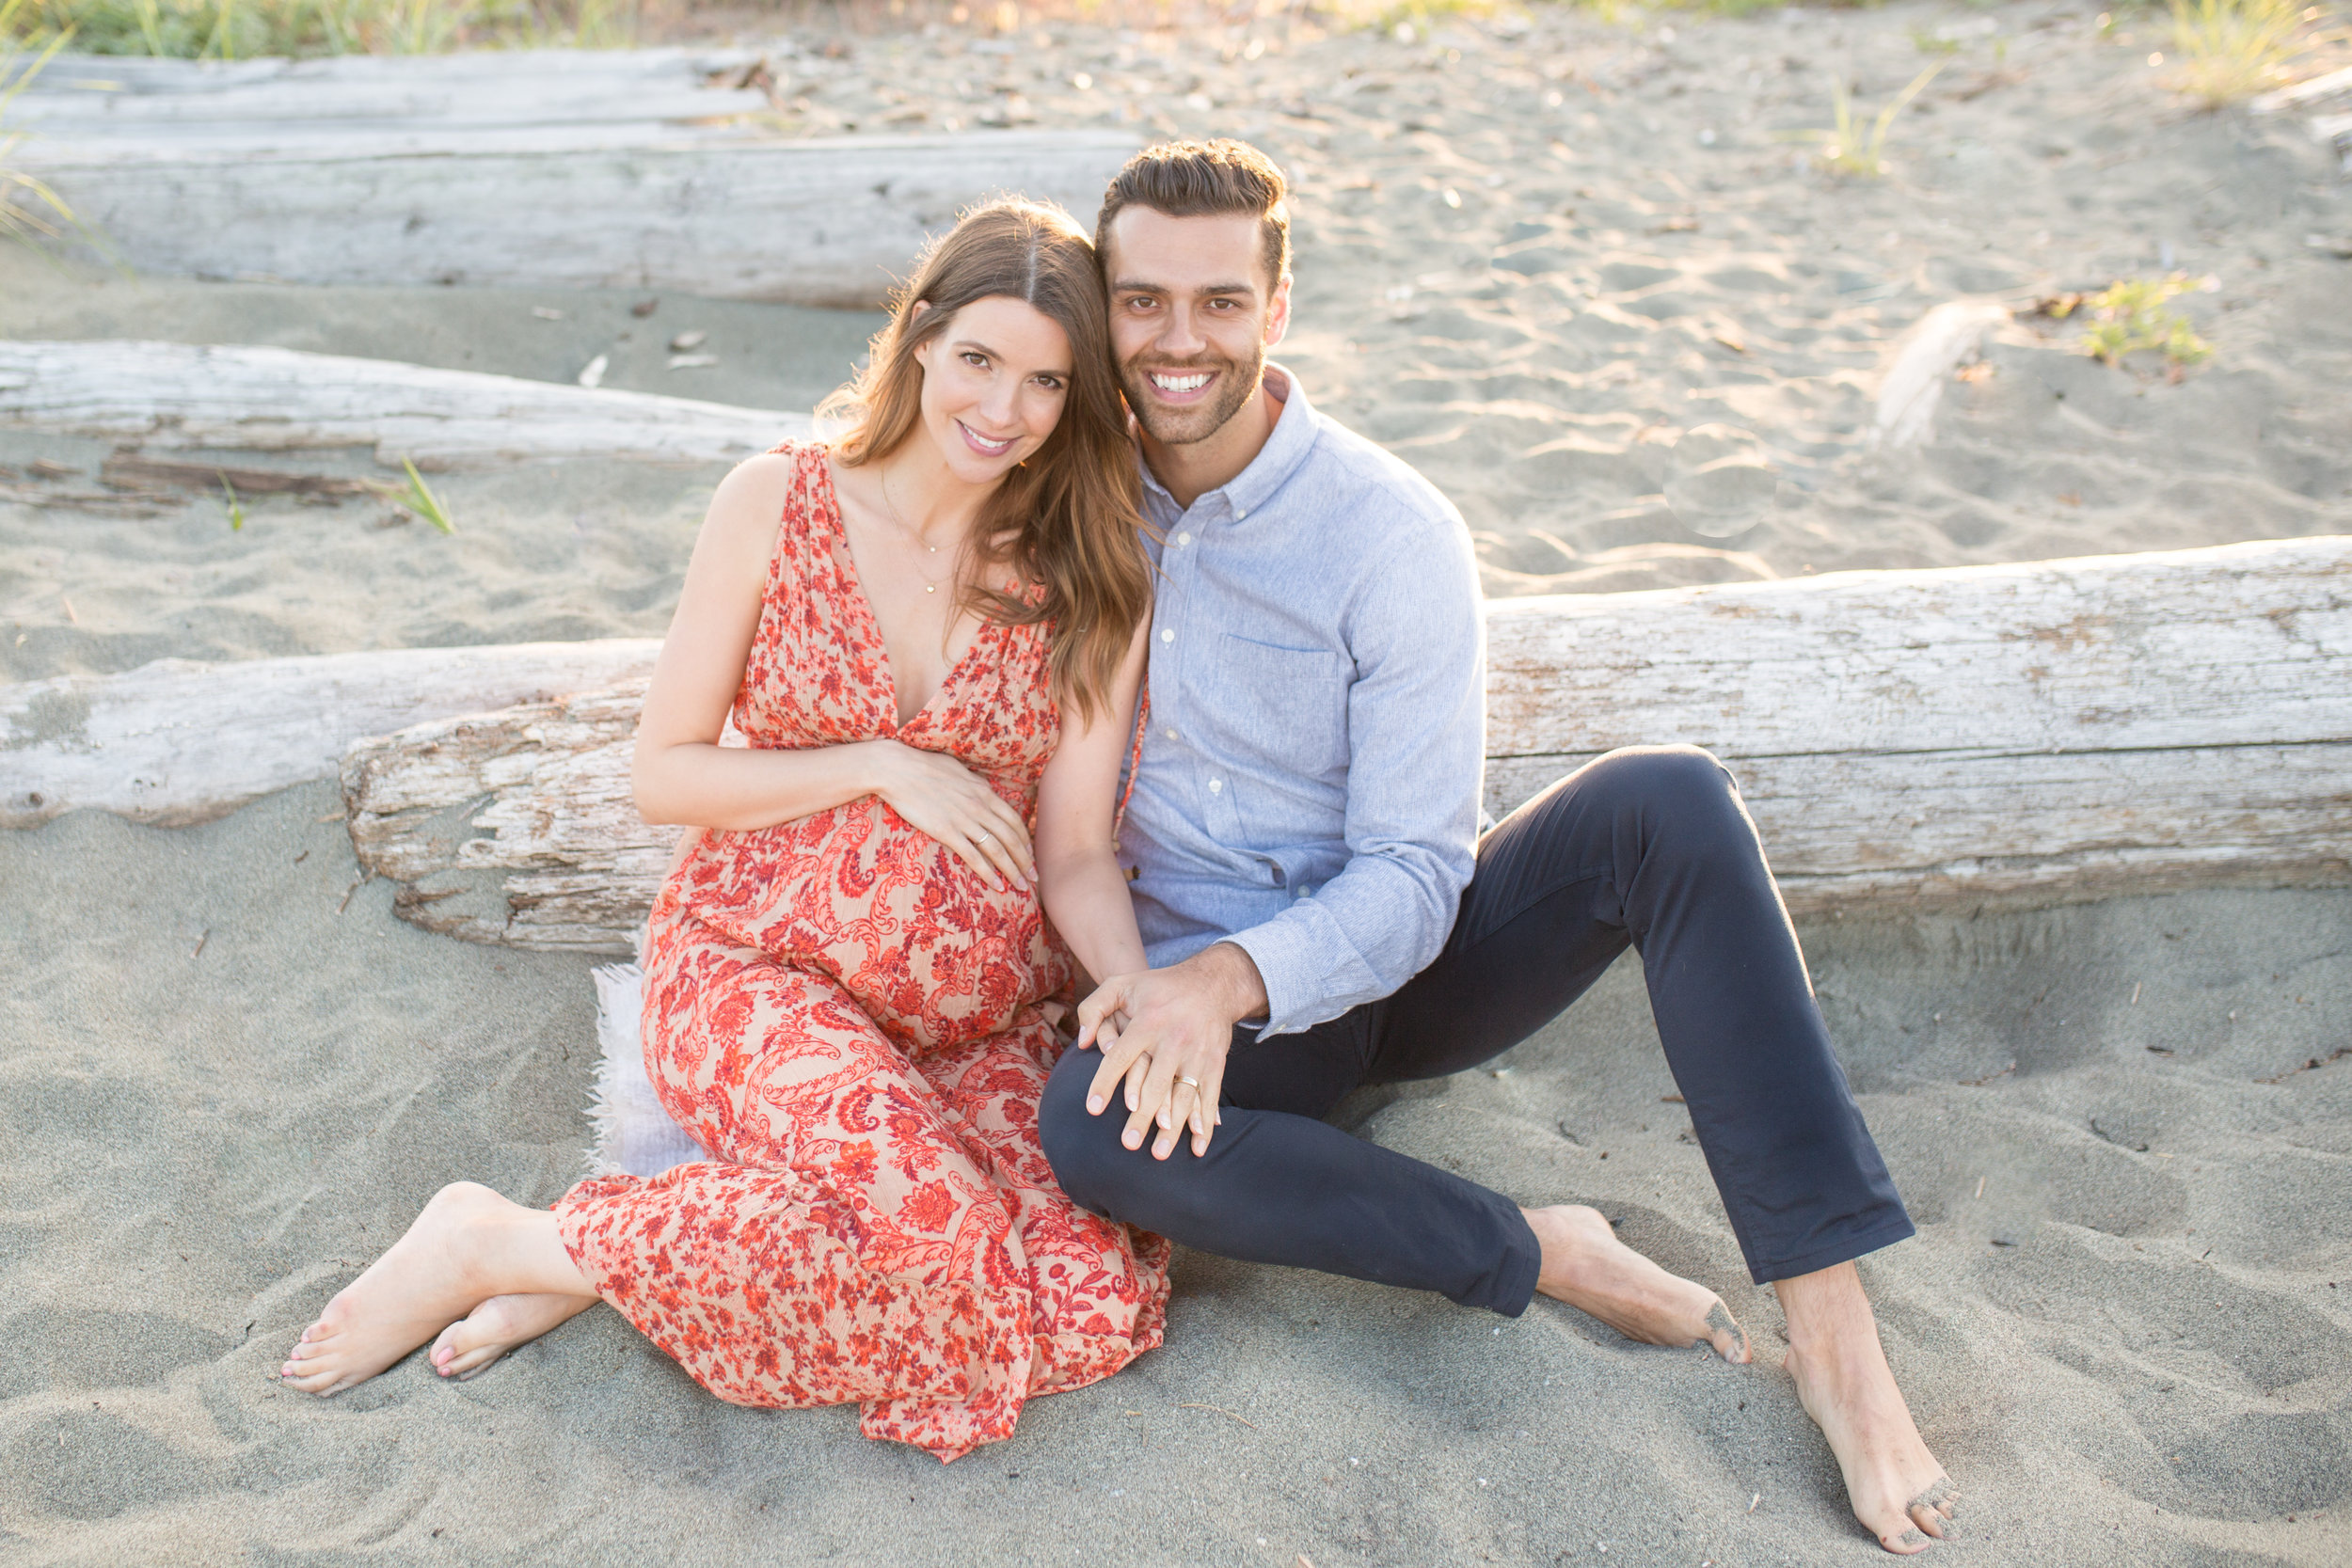 Centennial Beach Maternity Photos -32.jpg